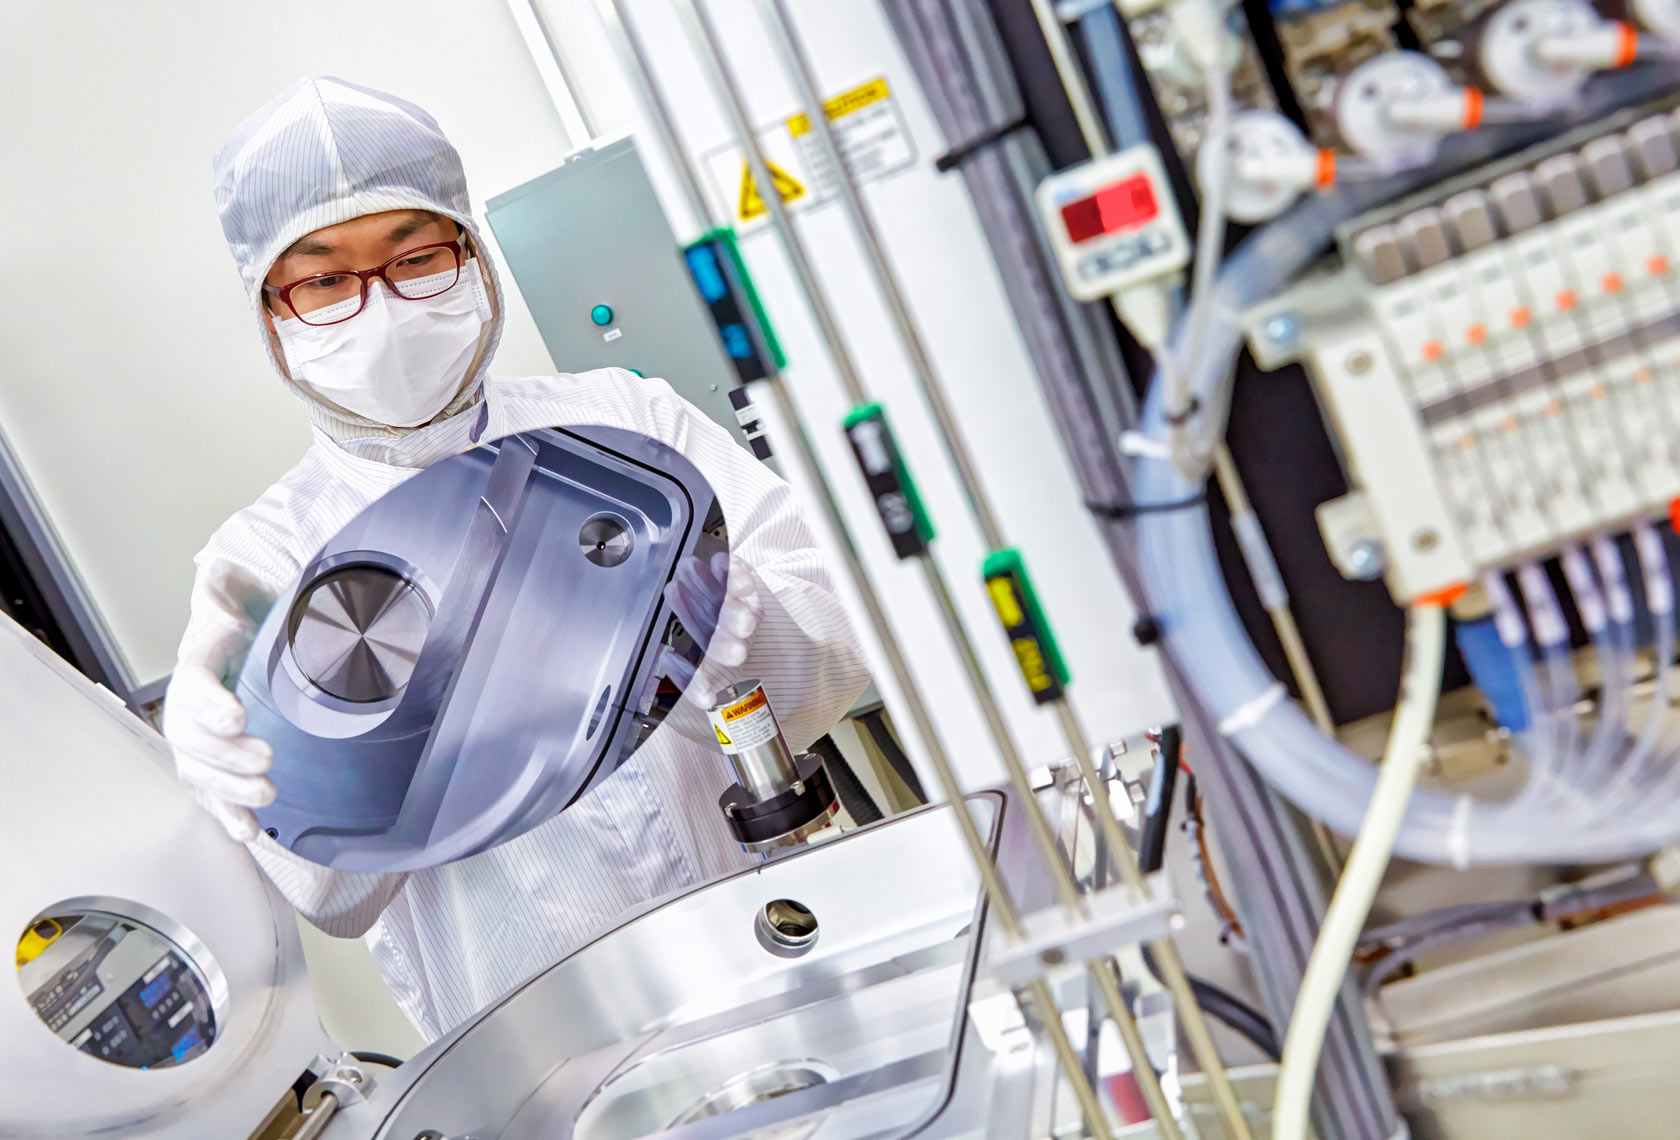 ATMI/labtech/cleanroom/medical photography